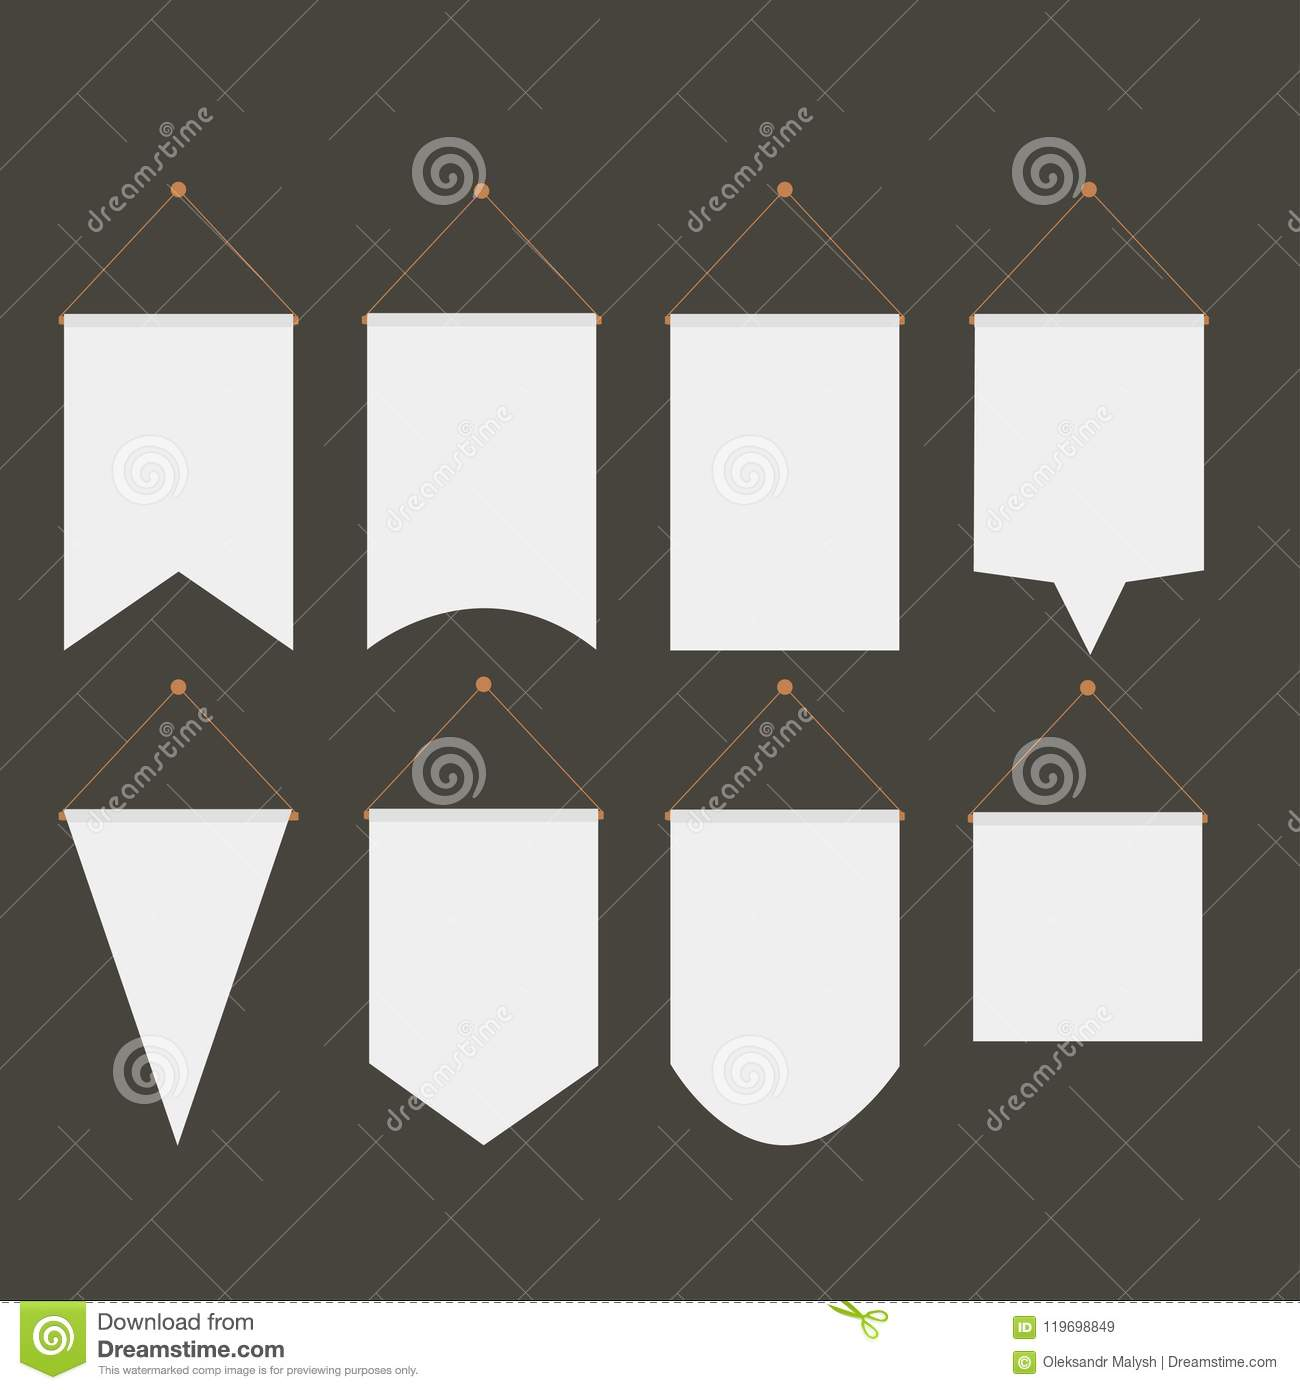 librecad templates download - blank pennant template gallery template design ideas